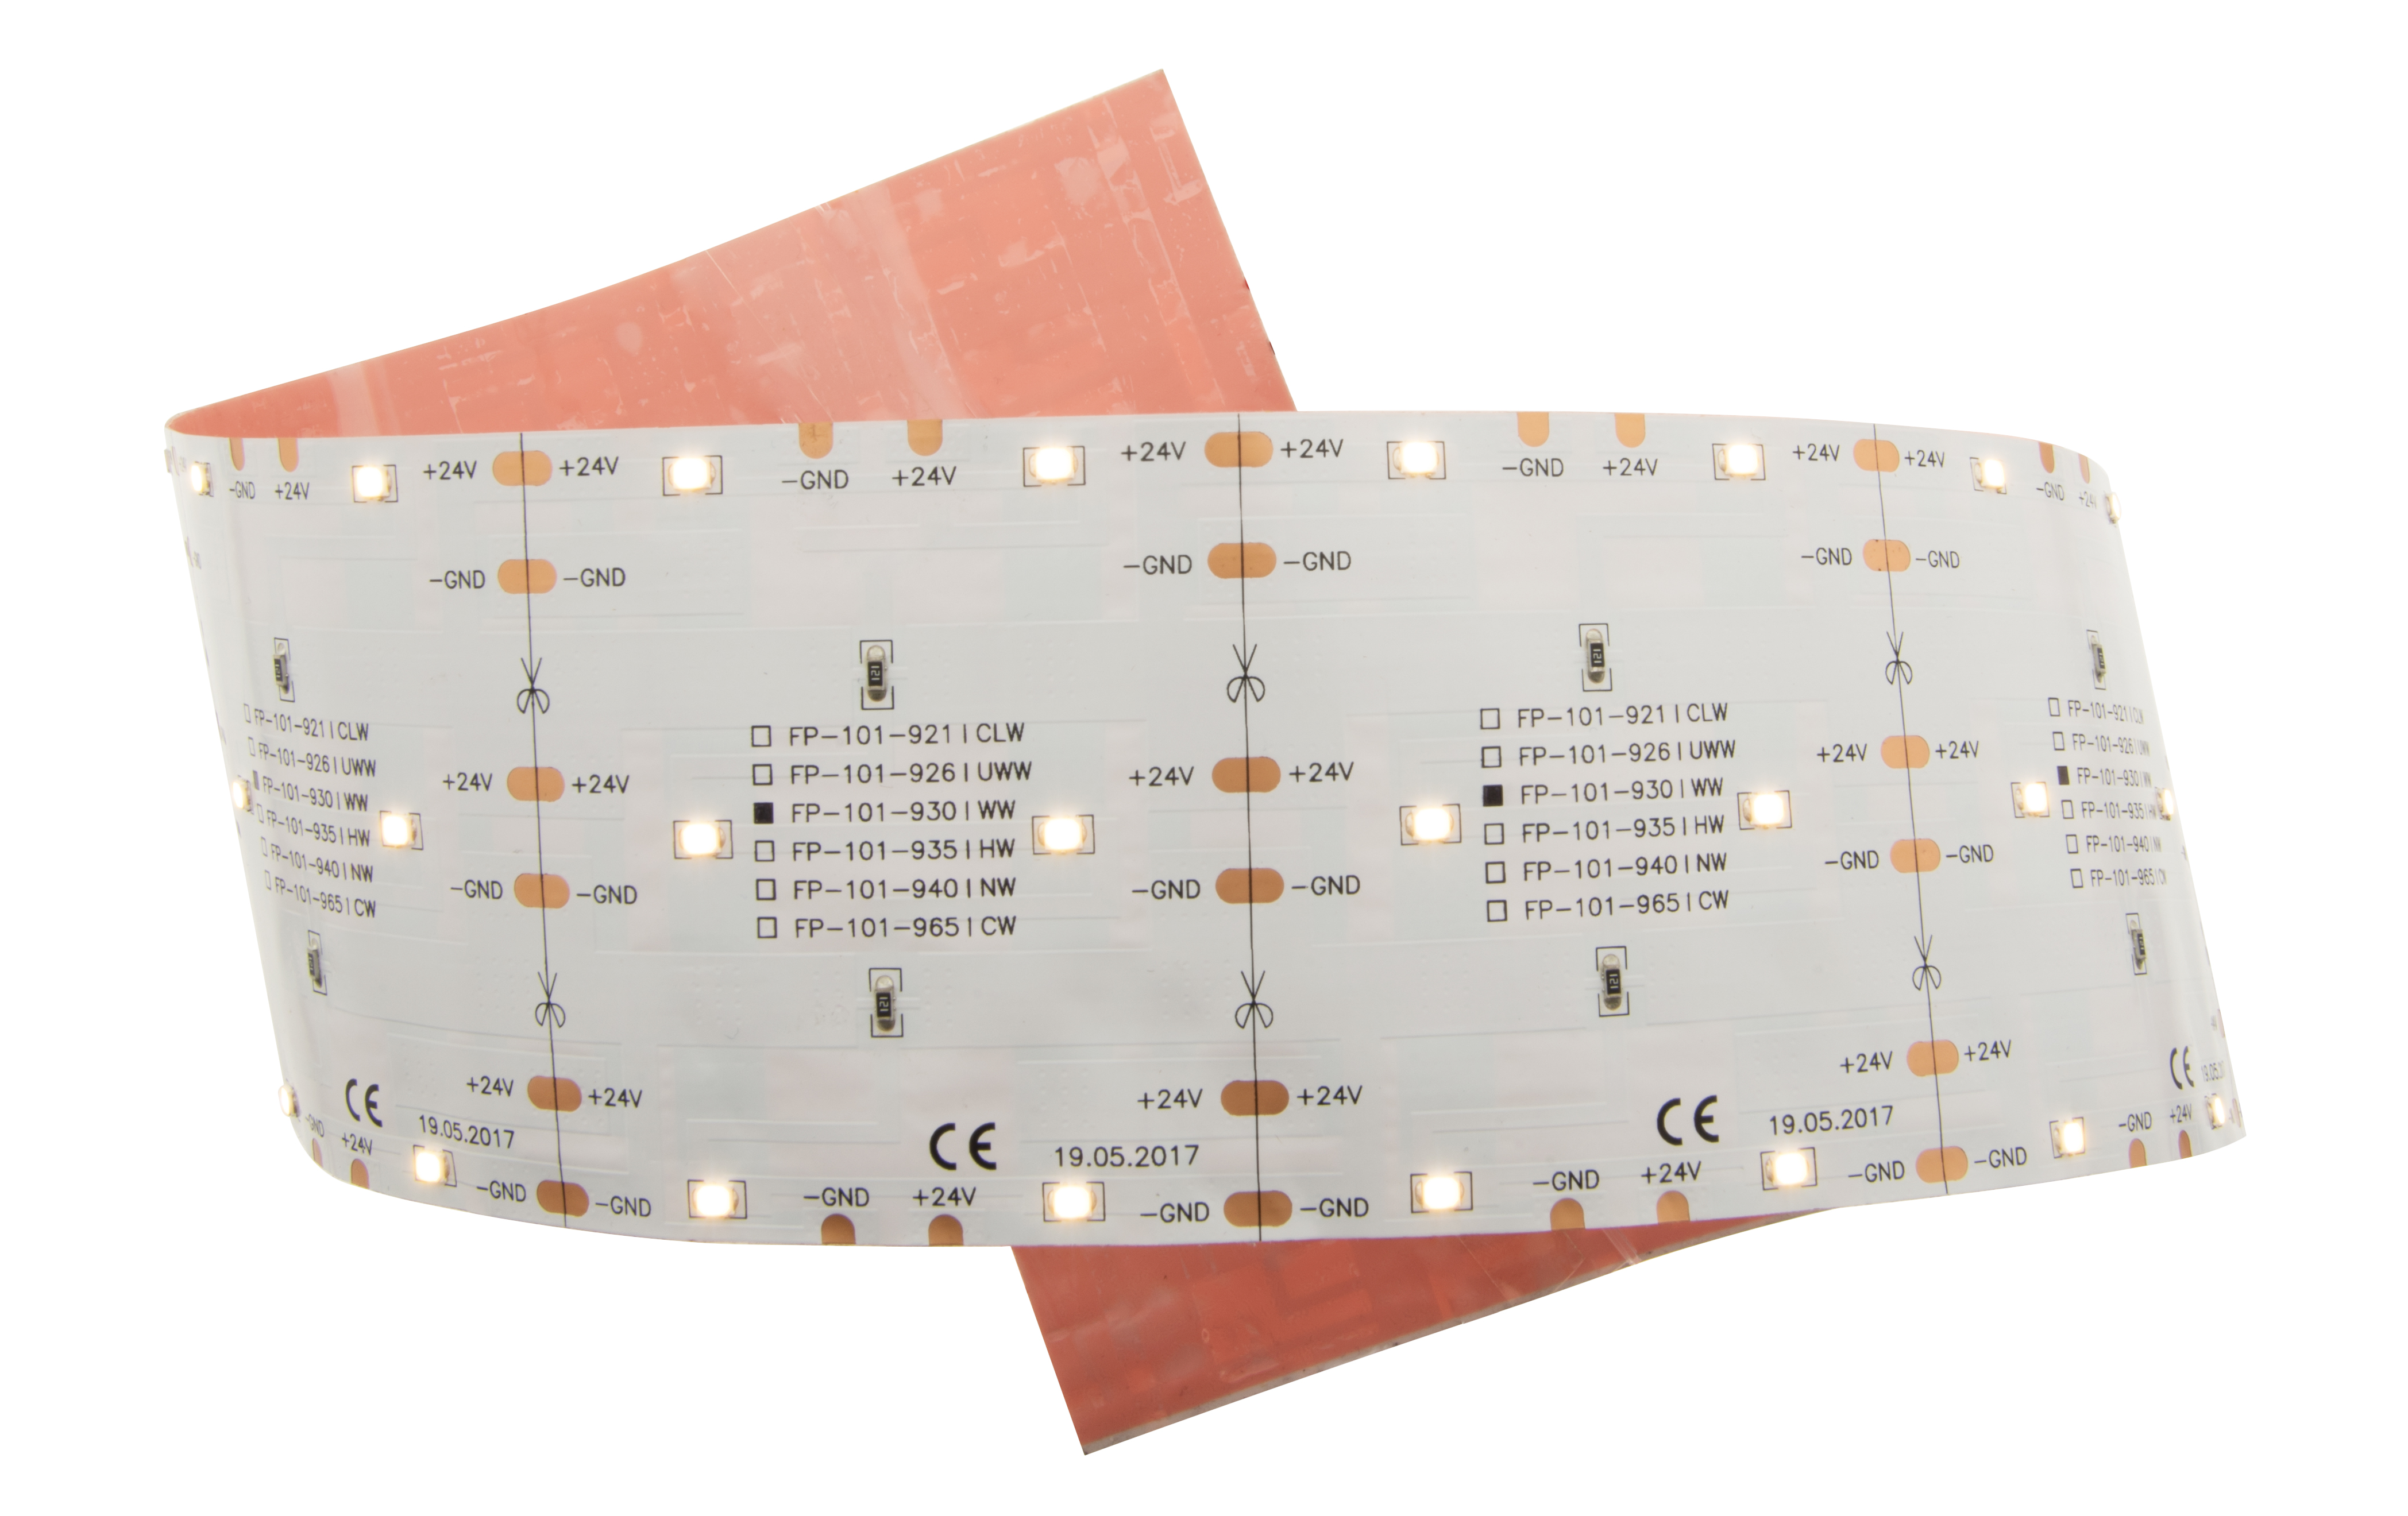 1 Stk LED Flexboard 7 CLW (Candle Light Weiss) - IP20, CRI/RA 90+ LIFP101921